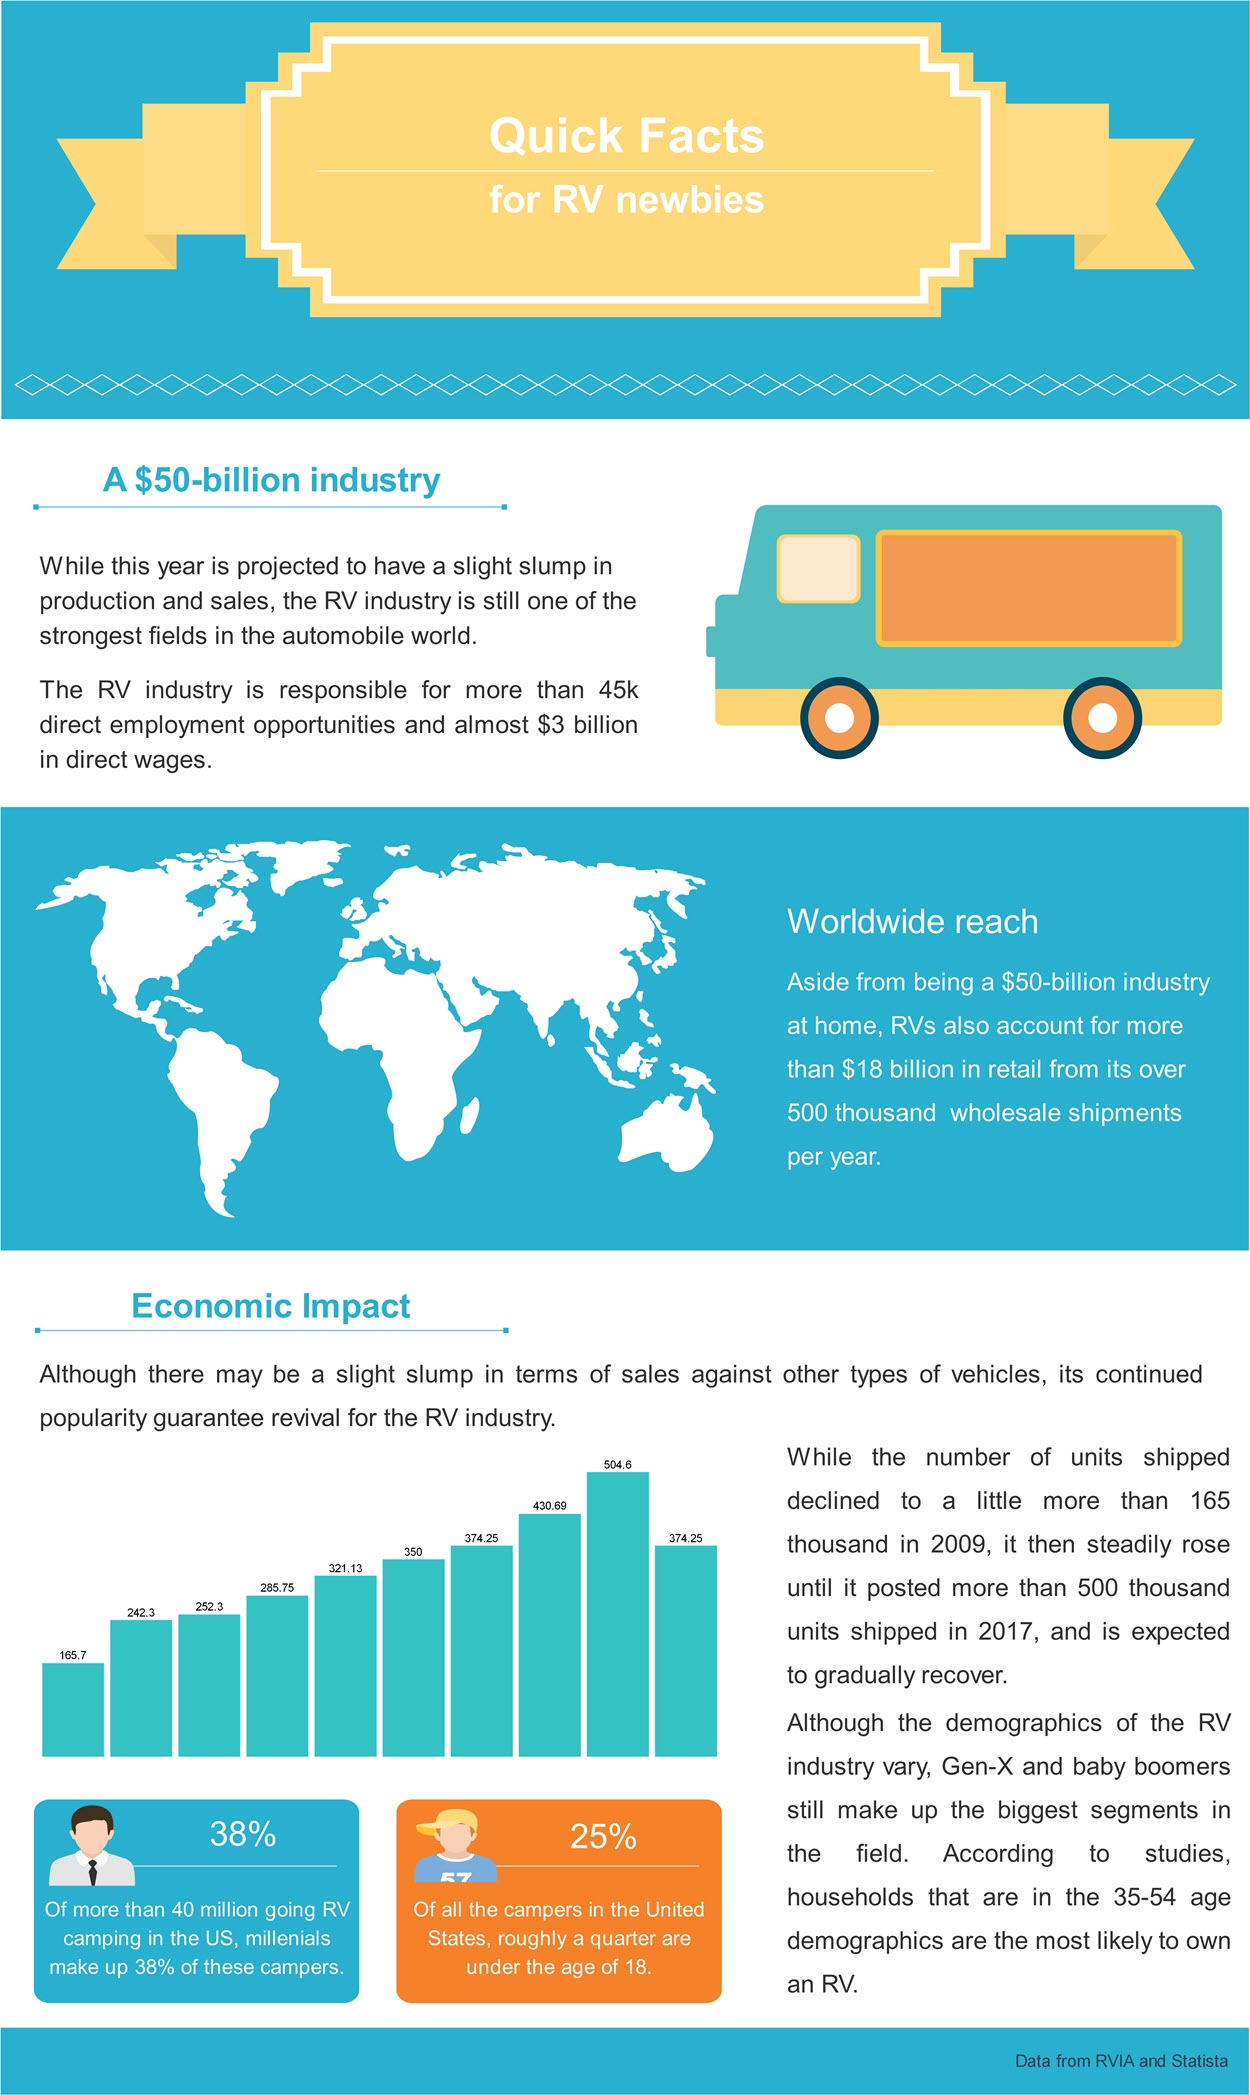 RV Market Size & Economic Impact Infographic.